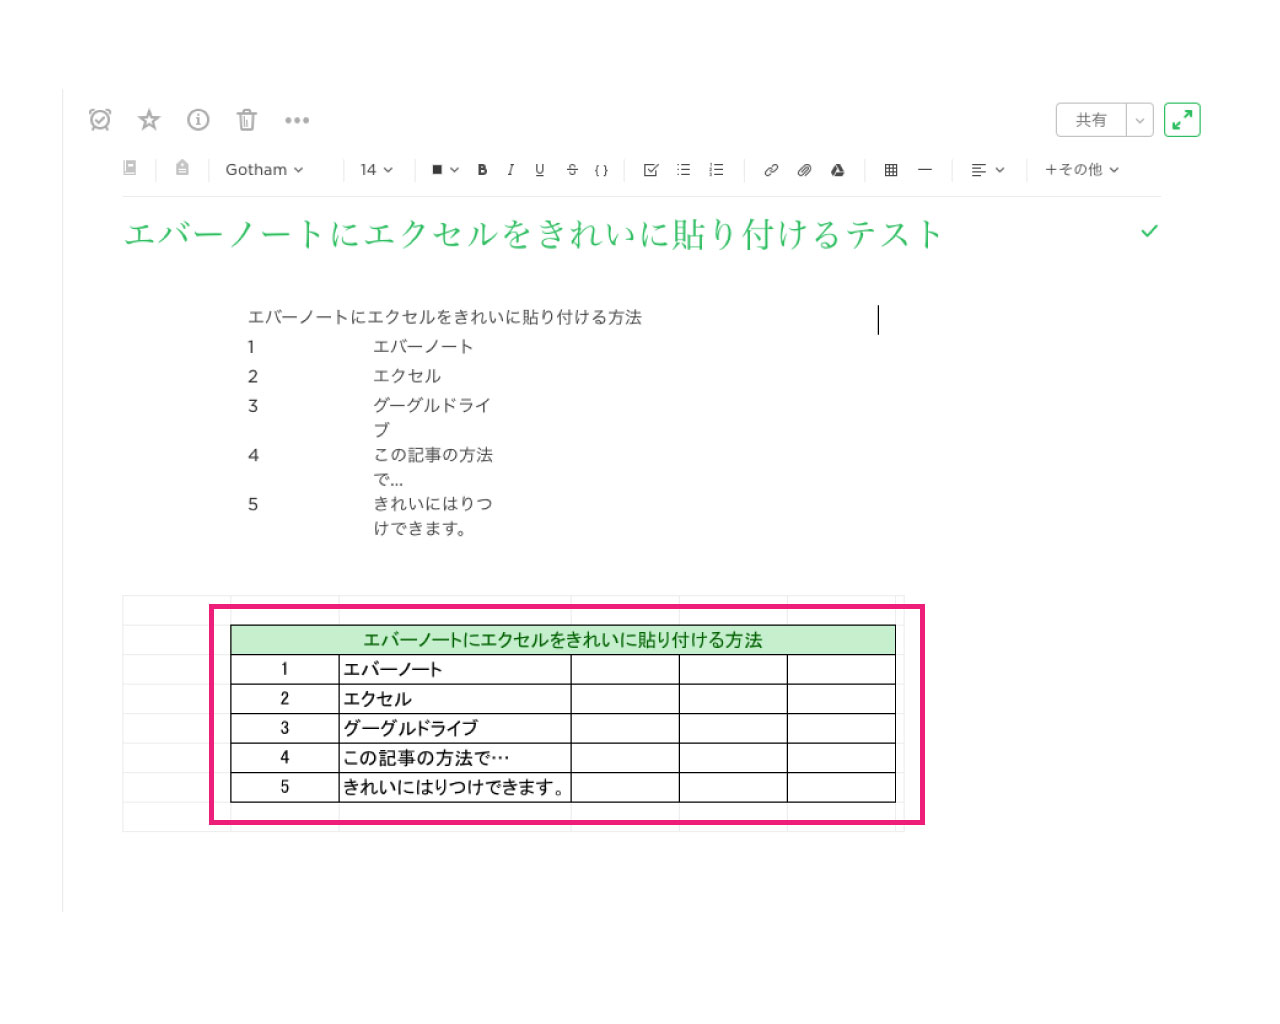 evernote-excel-copy-and-paste-6